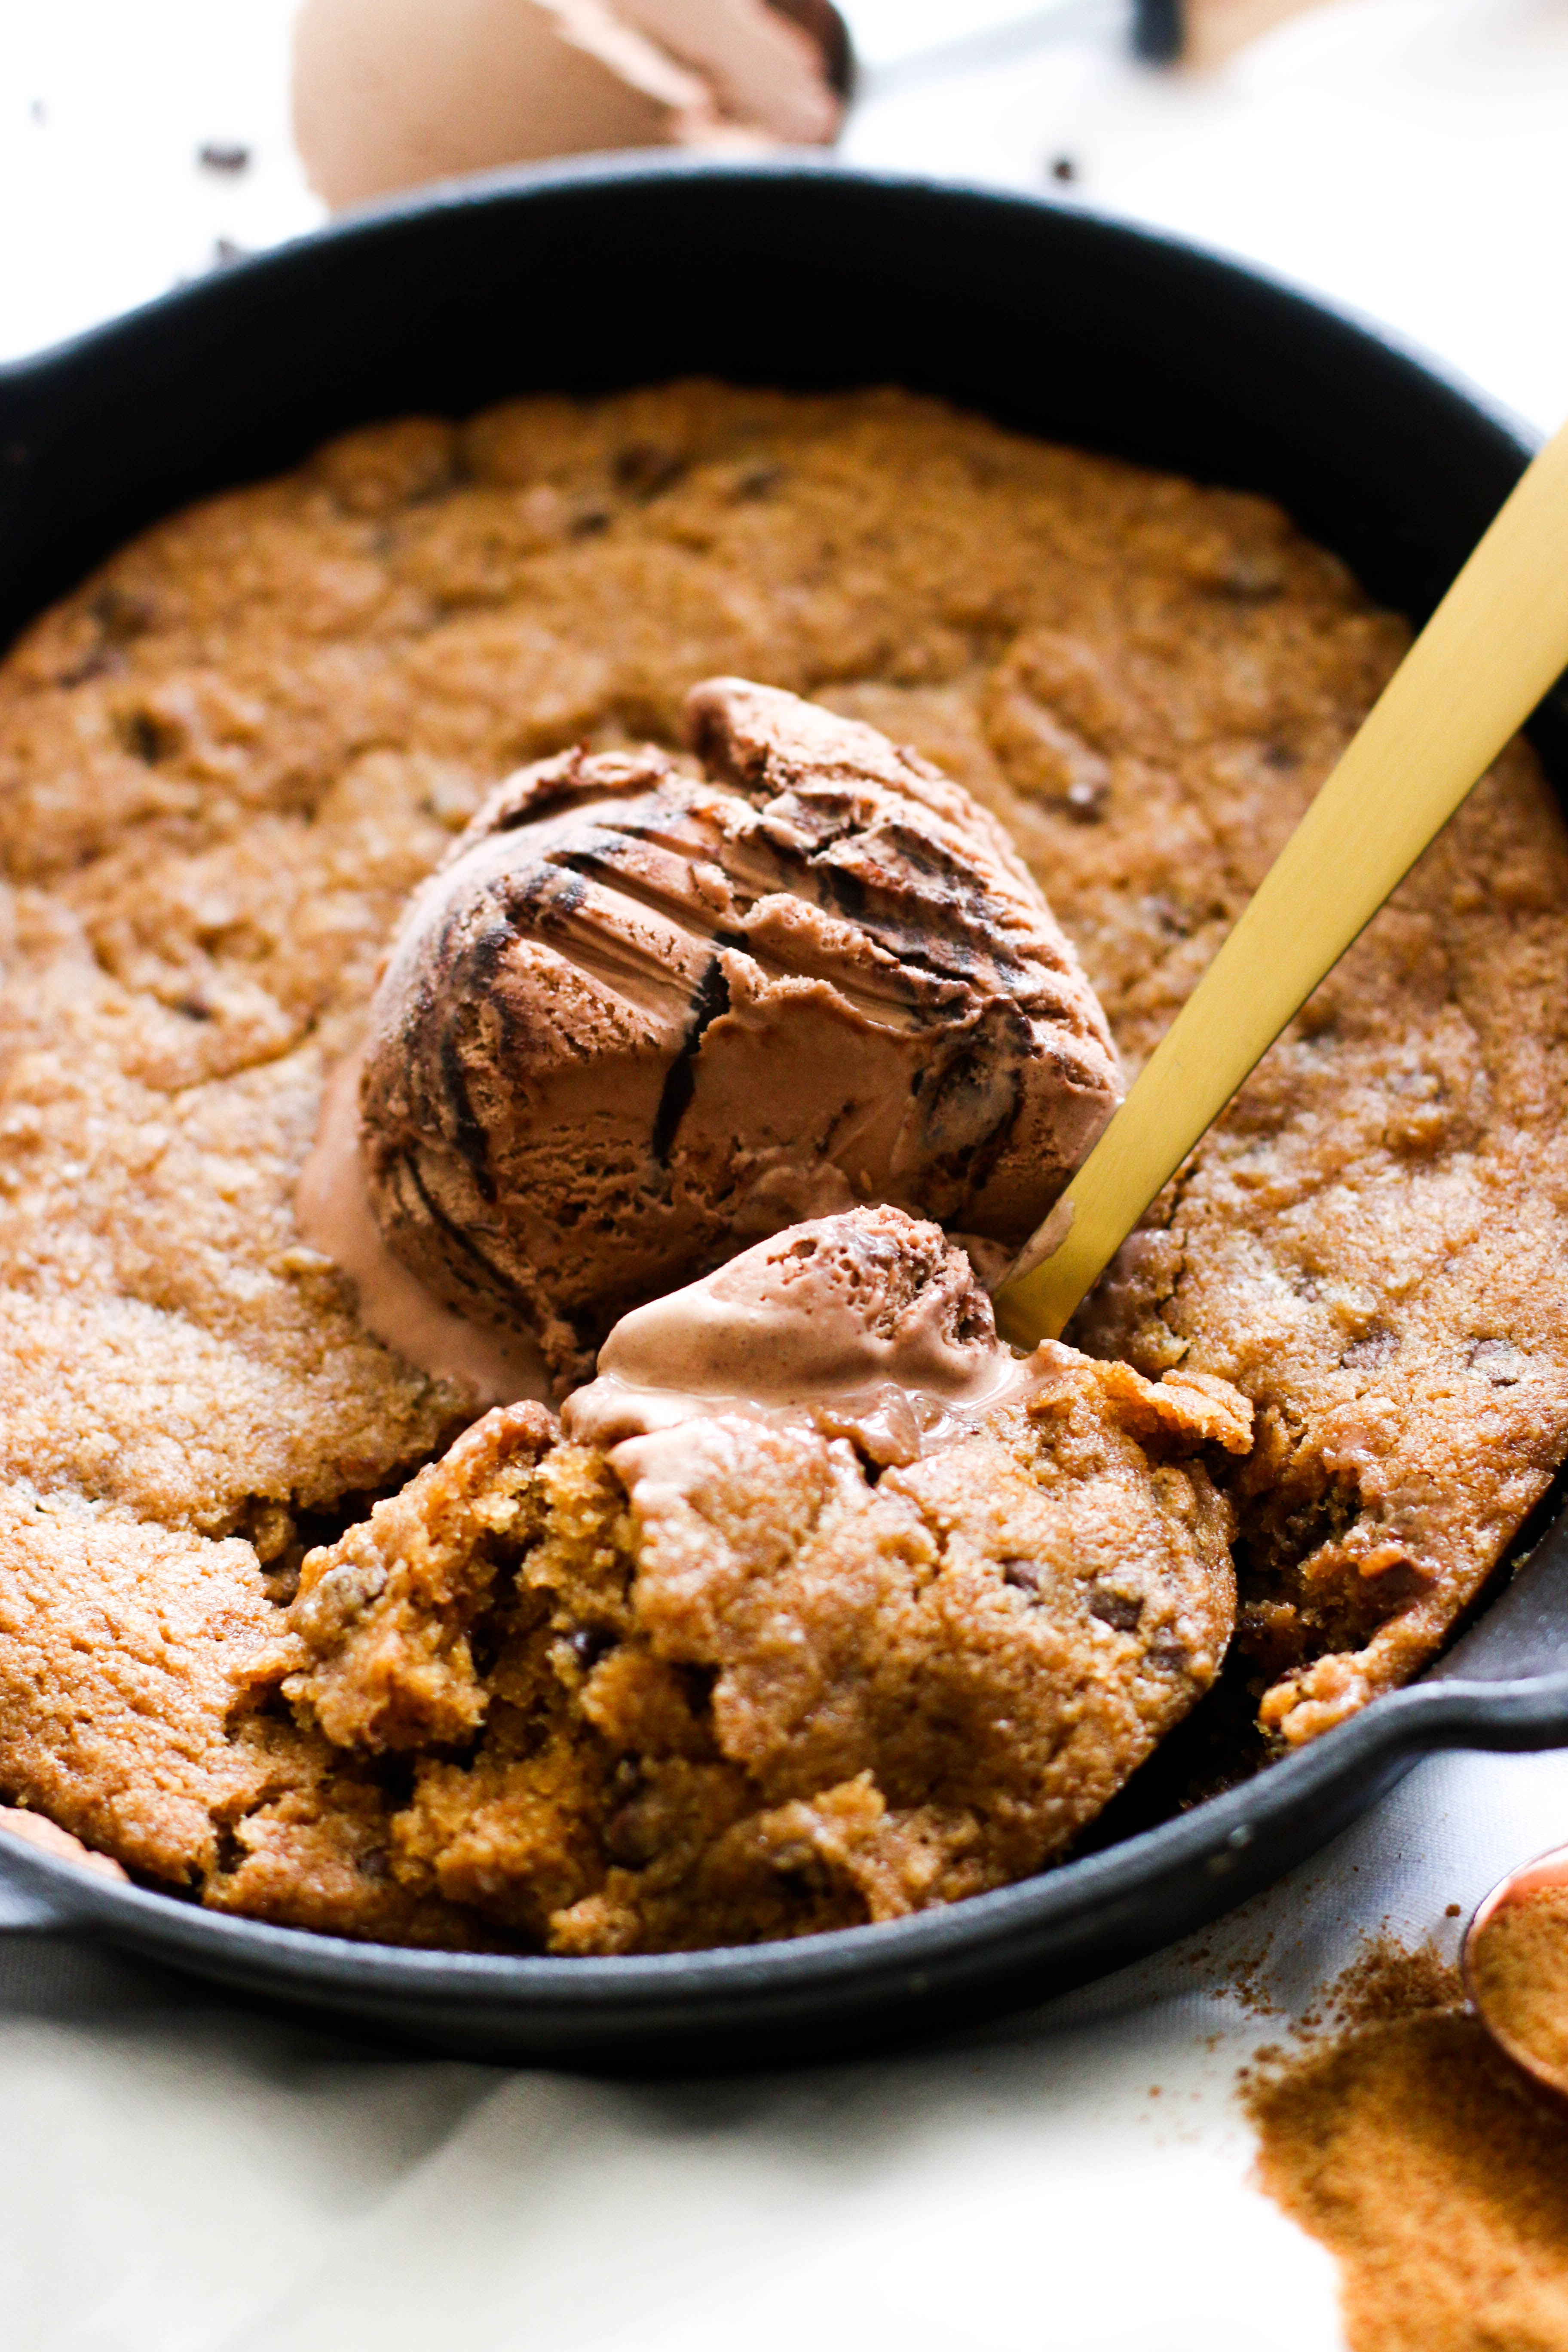 This vegan salted chocolate chip cookie skillet is filled with flavor, chocolate, and makes for the perfect dessert! It's made with minimal ingredients and comes together in under an hour.